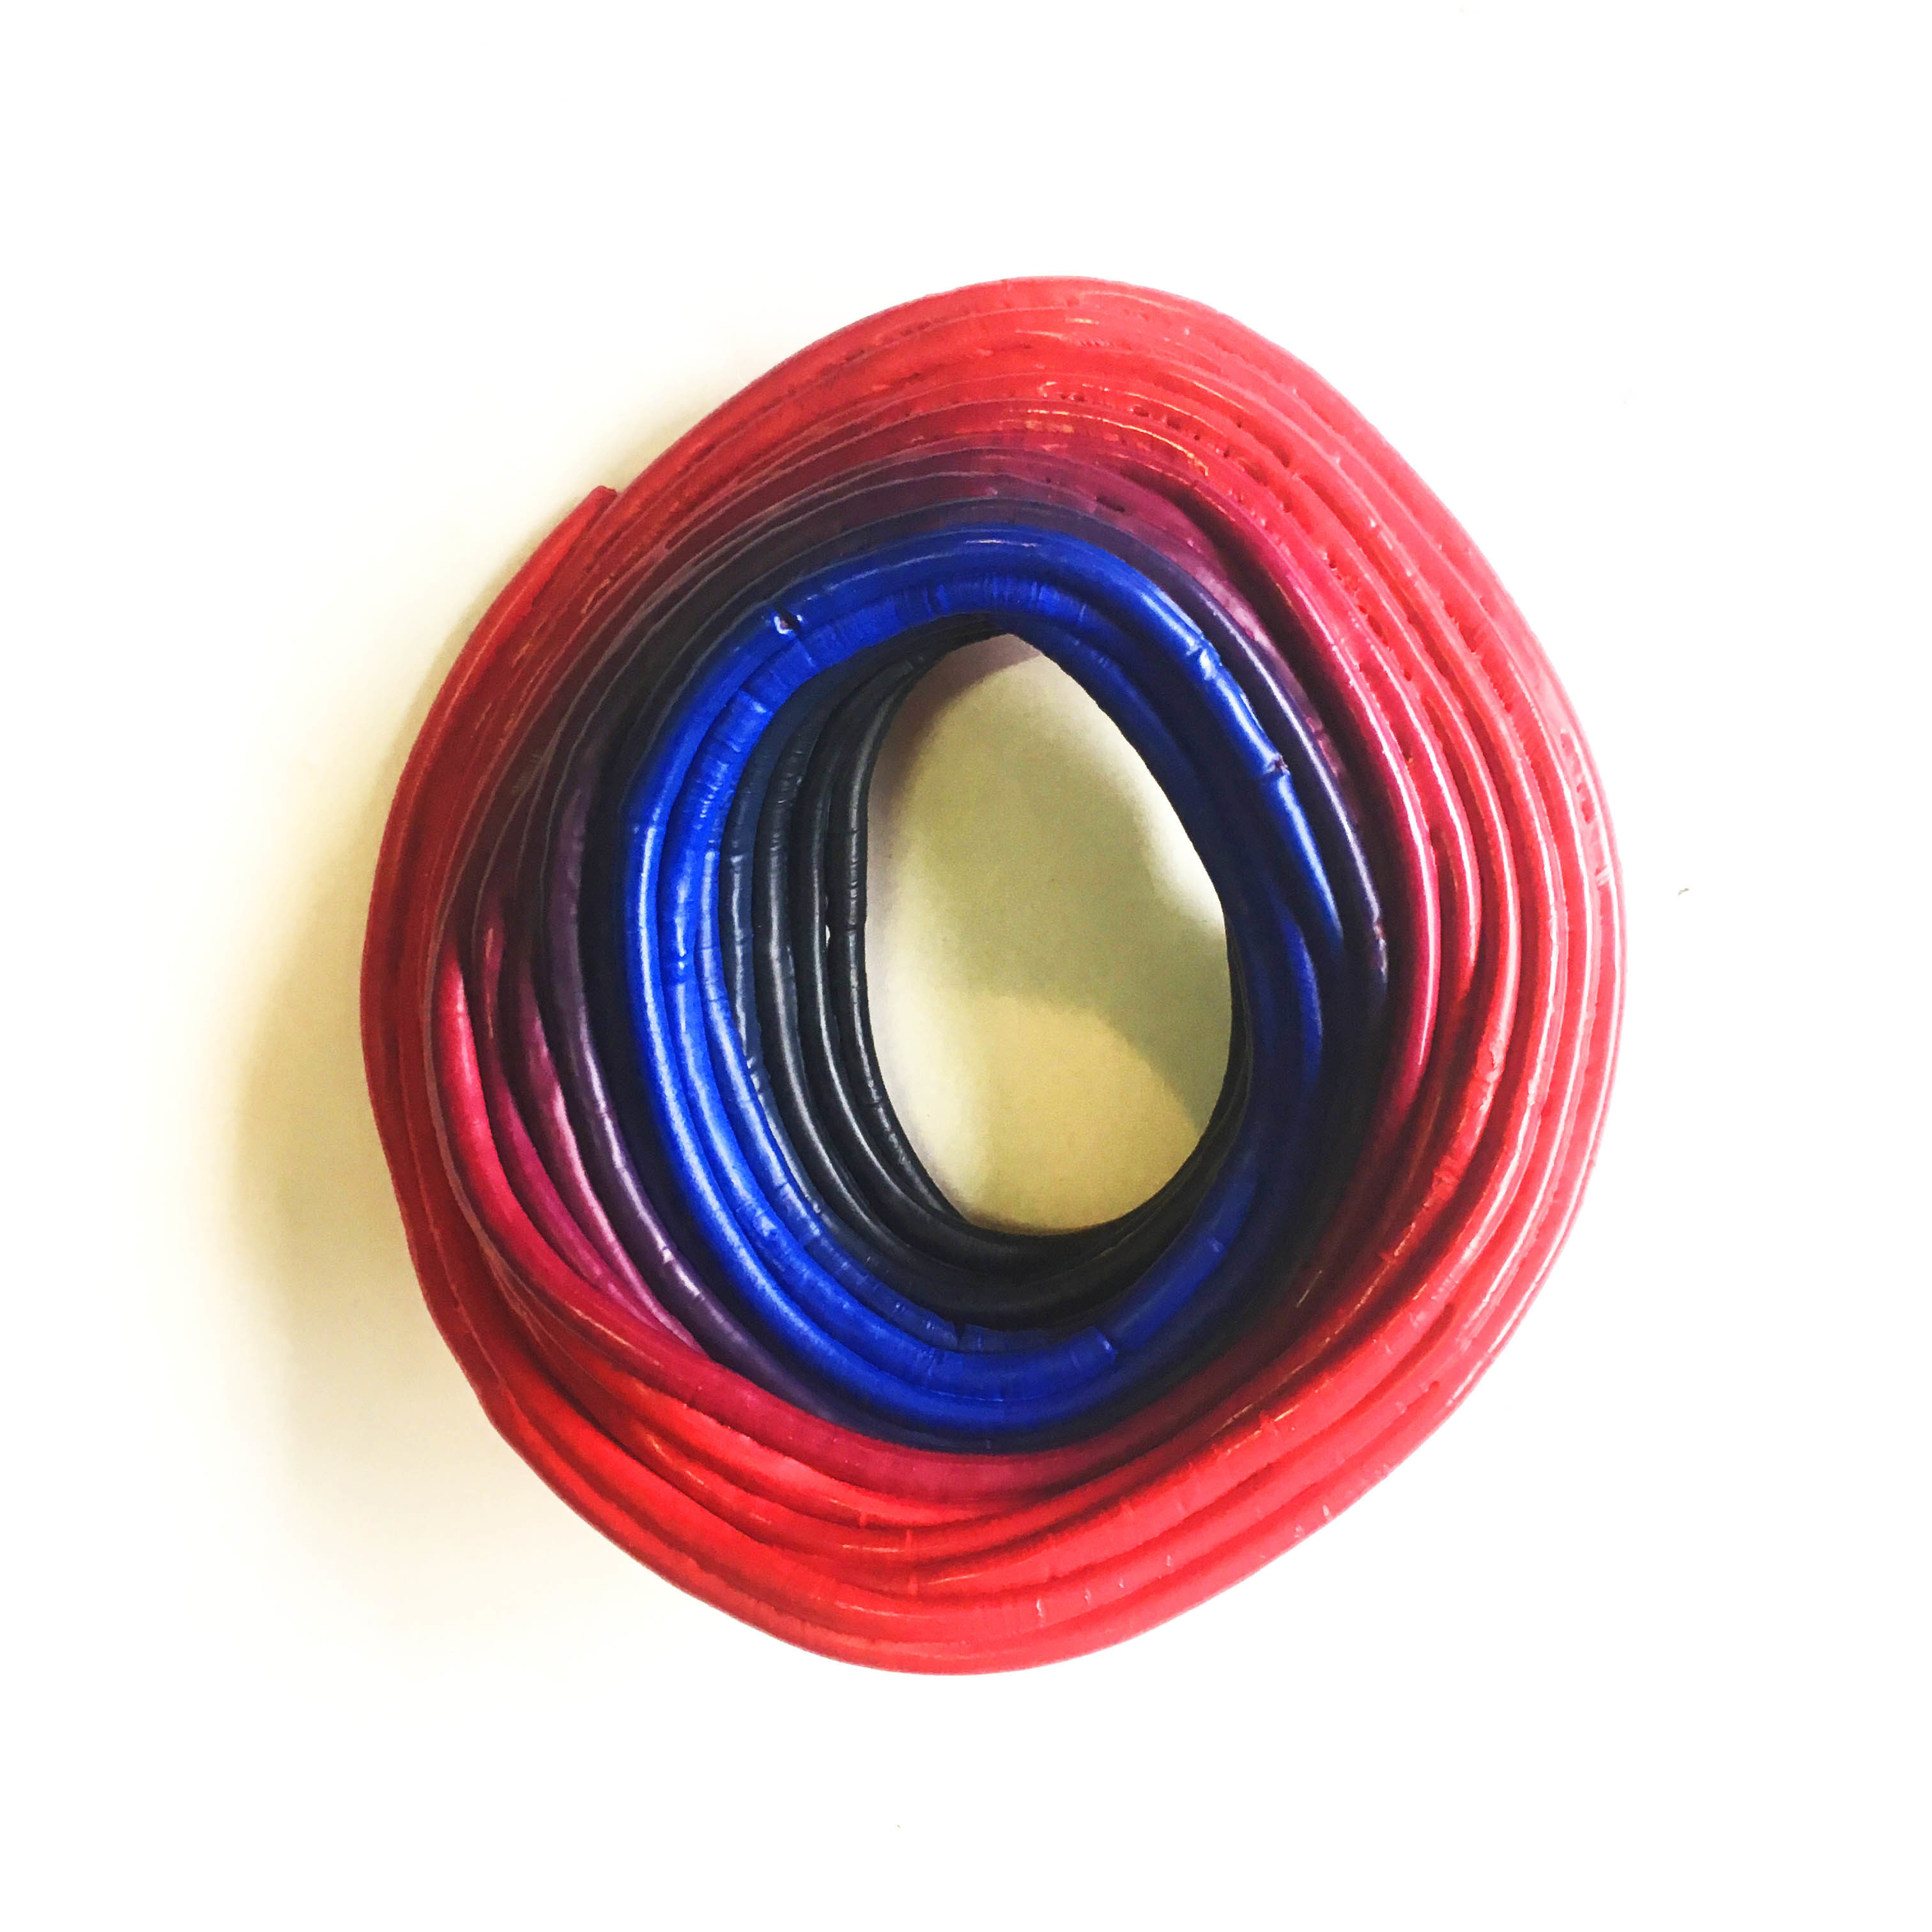 Concentric Circle - Red and Blue, Recycled Polyethylene (2019)